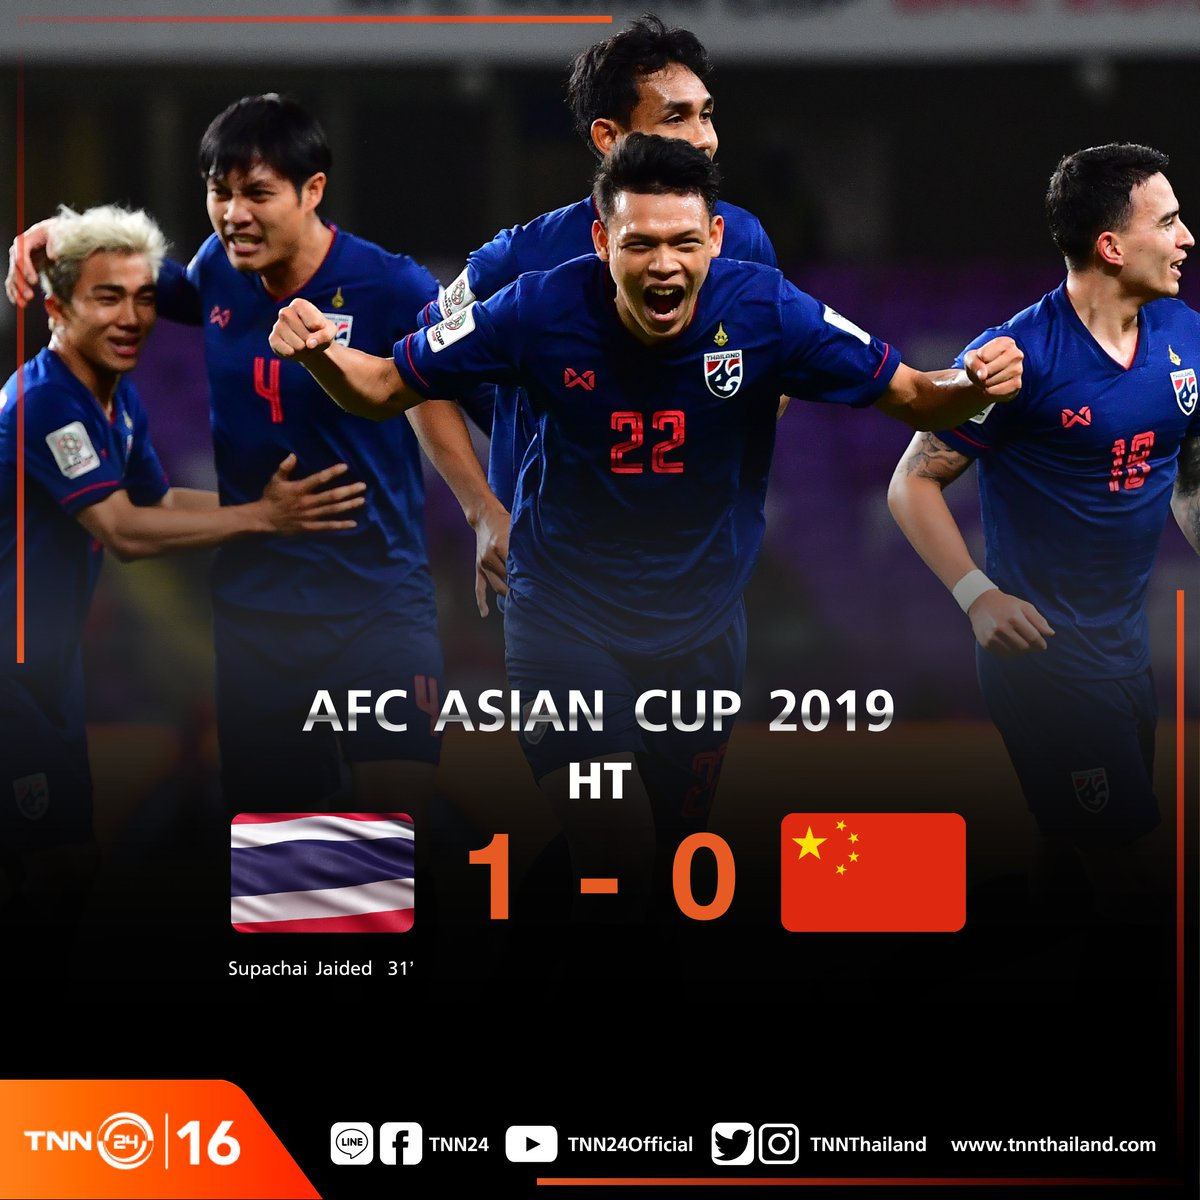 TNN24 ช่อง 16's photo on #AFCAsianCup2019